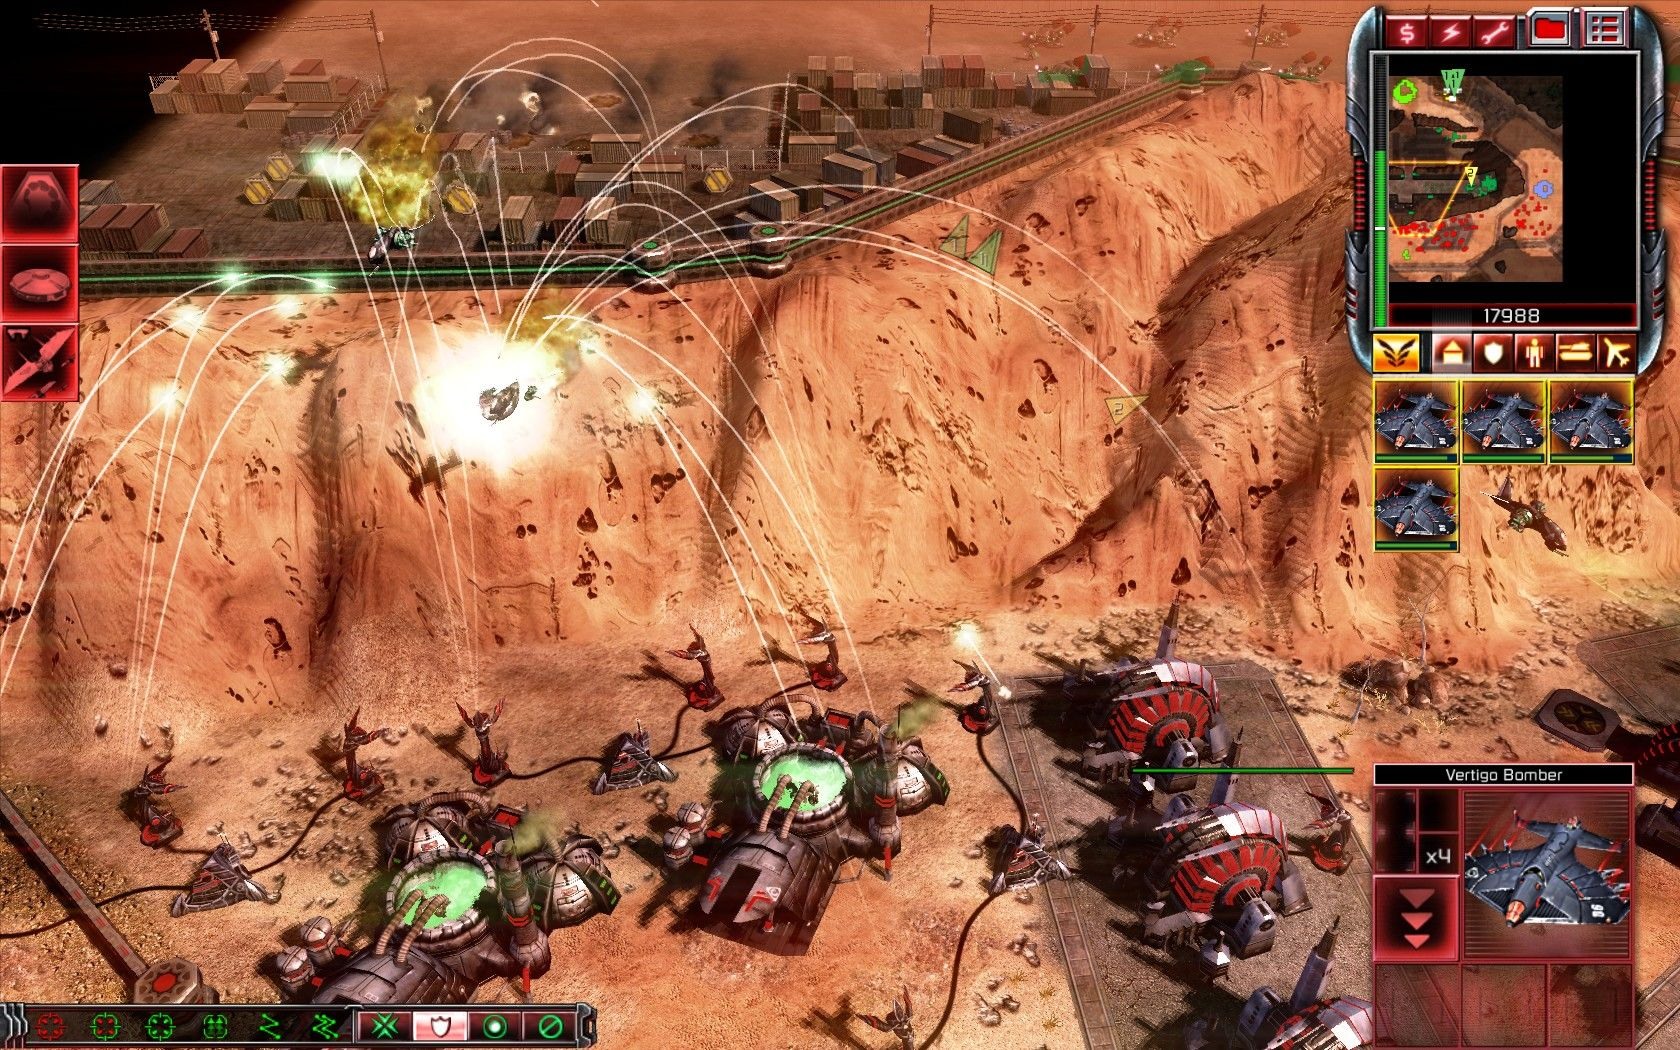 Command & Conquer 3: Tiberium Wars Windows Posting anti-air defenses behind the cliff. This surely surprised enemy Venom crafts and bombers.